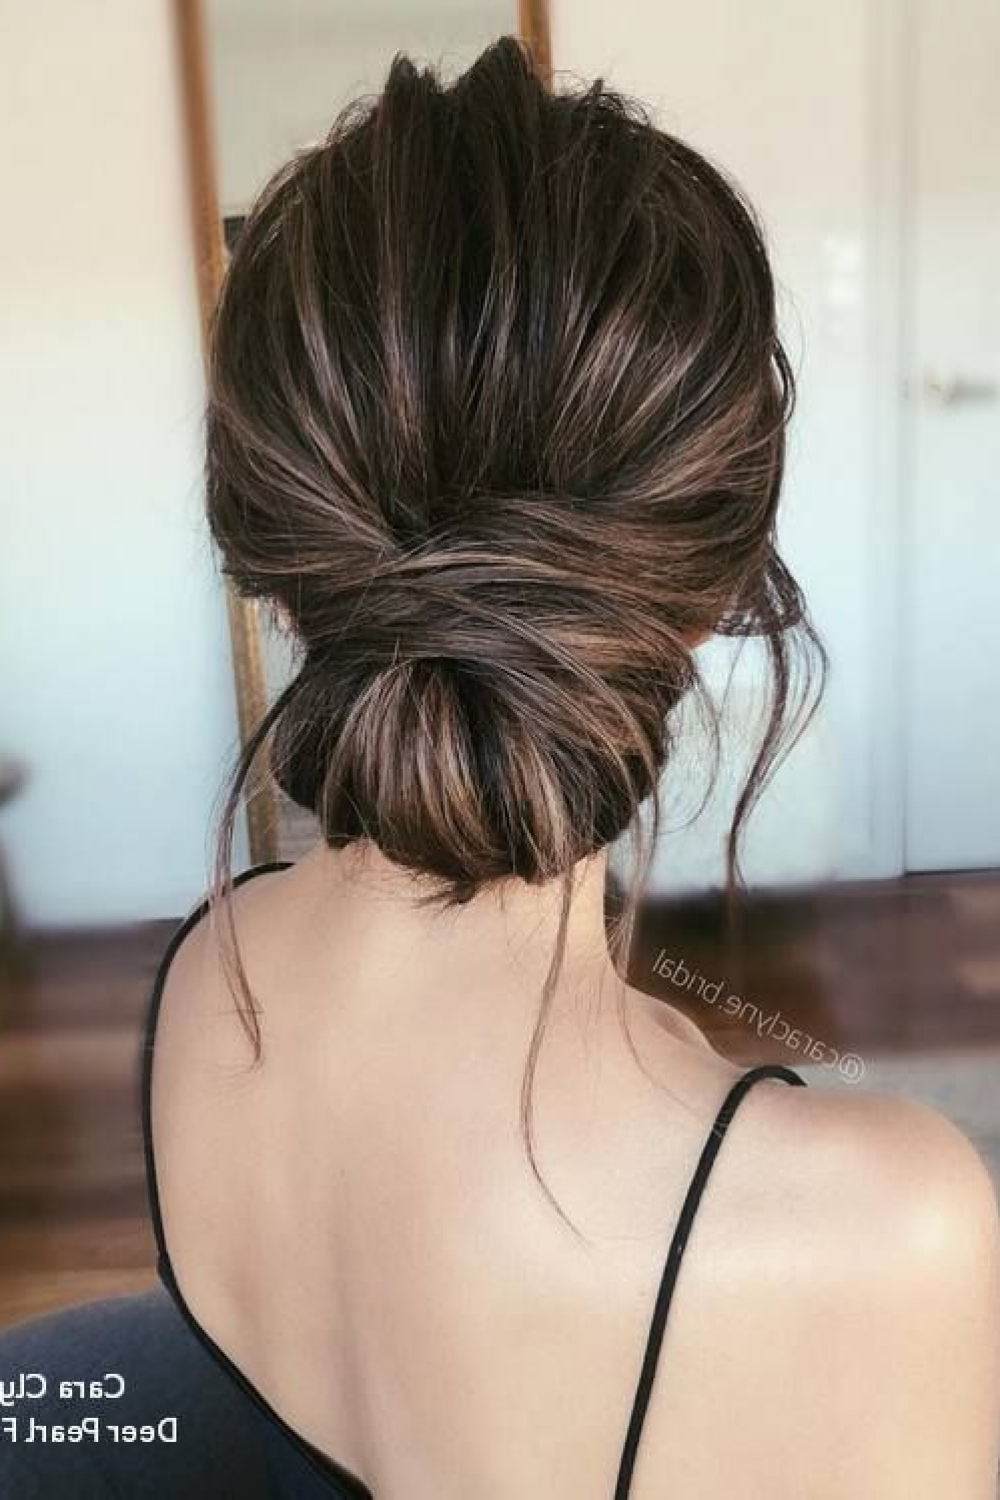 21 Awesome Wedding Hairstyle Ideas You Will Fall In Love Hair Styles Messy Wedding Hair Wedding Hair Inspiration